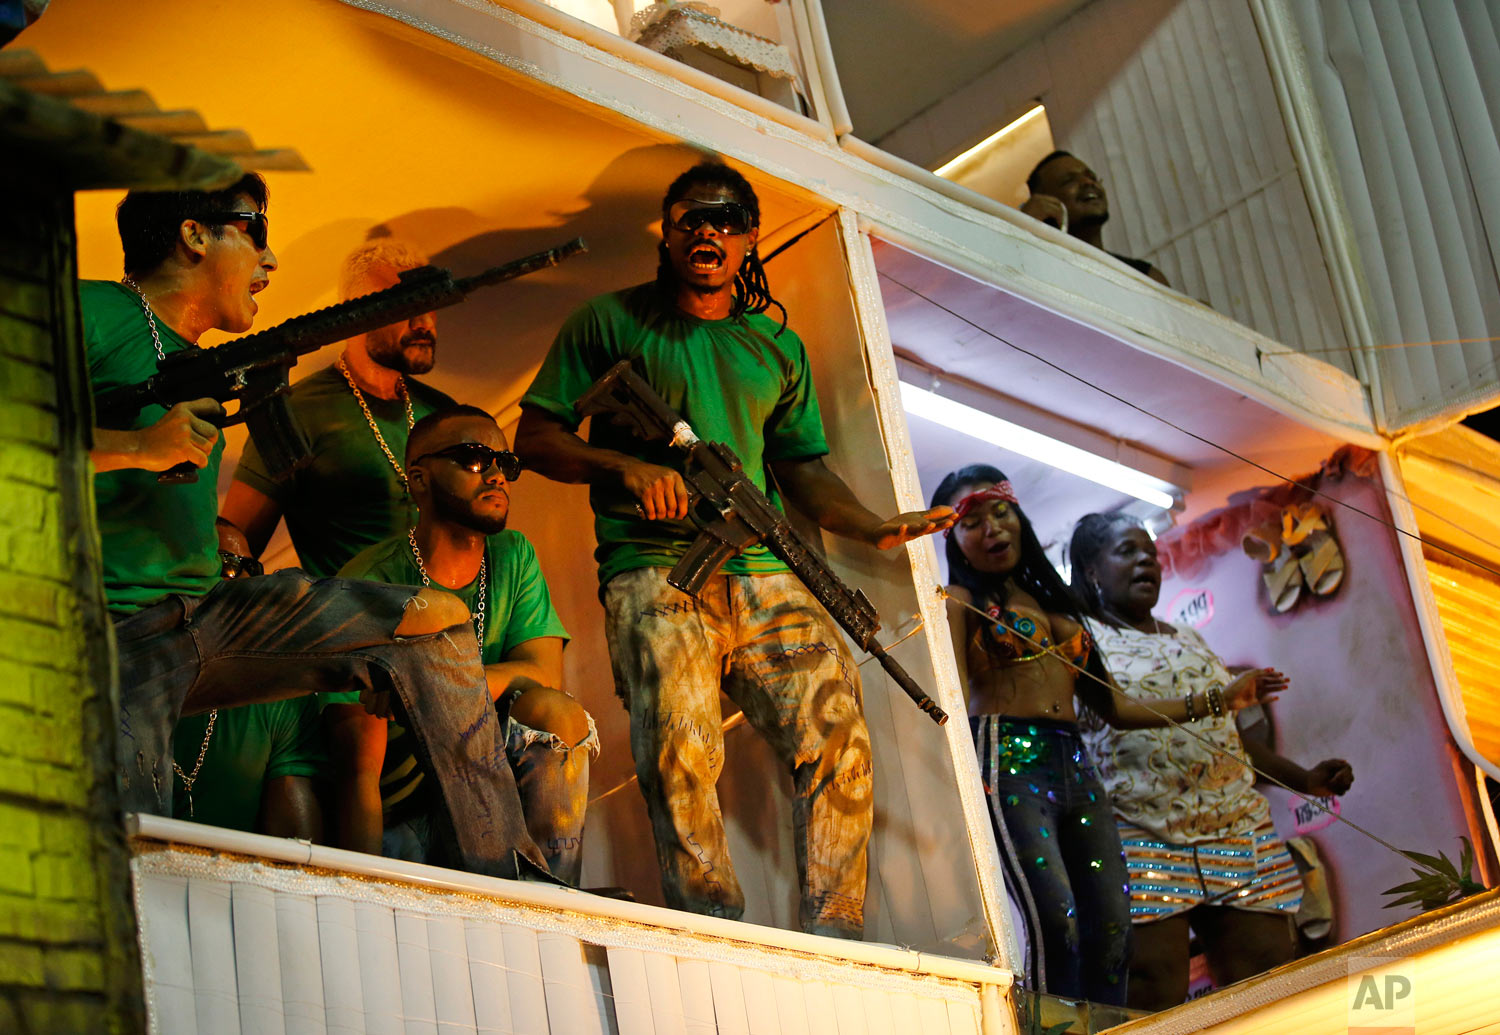 Members from the Beija Flor samba school portray drug traffickers during Carnival celebrations at the Sambadrome in Rio de Janeiro, Brazil, early Tuesday, Feb. 13, 2018. Brazil's most famous city has long struggled with violence, particularly in the hundreds of slums controlled by drug traffickers, with criminal assaults and increasing shootouts between drug traffickers and police. (AP Photo/Silvia Izquierdo)